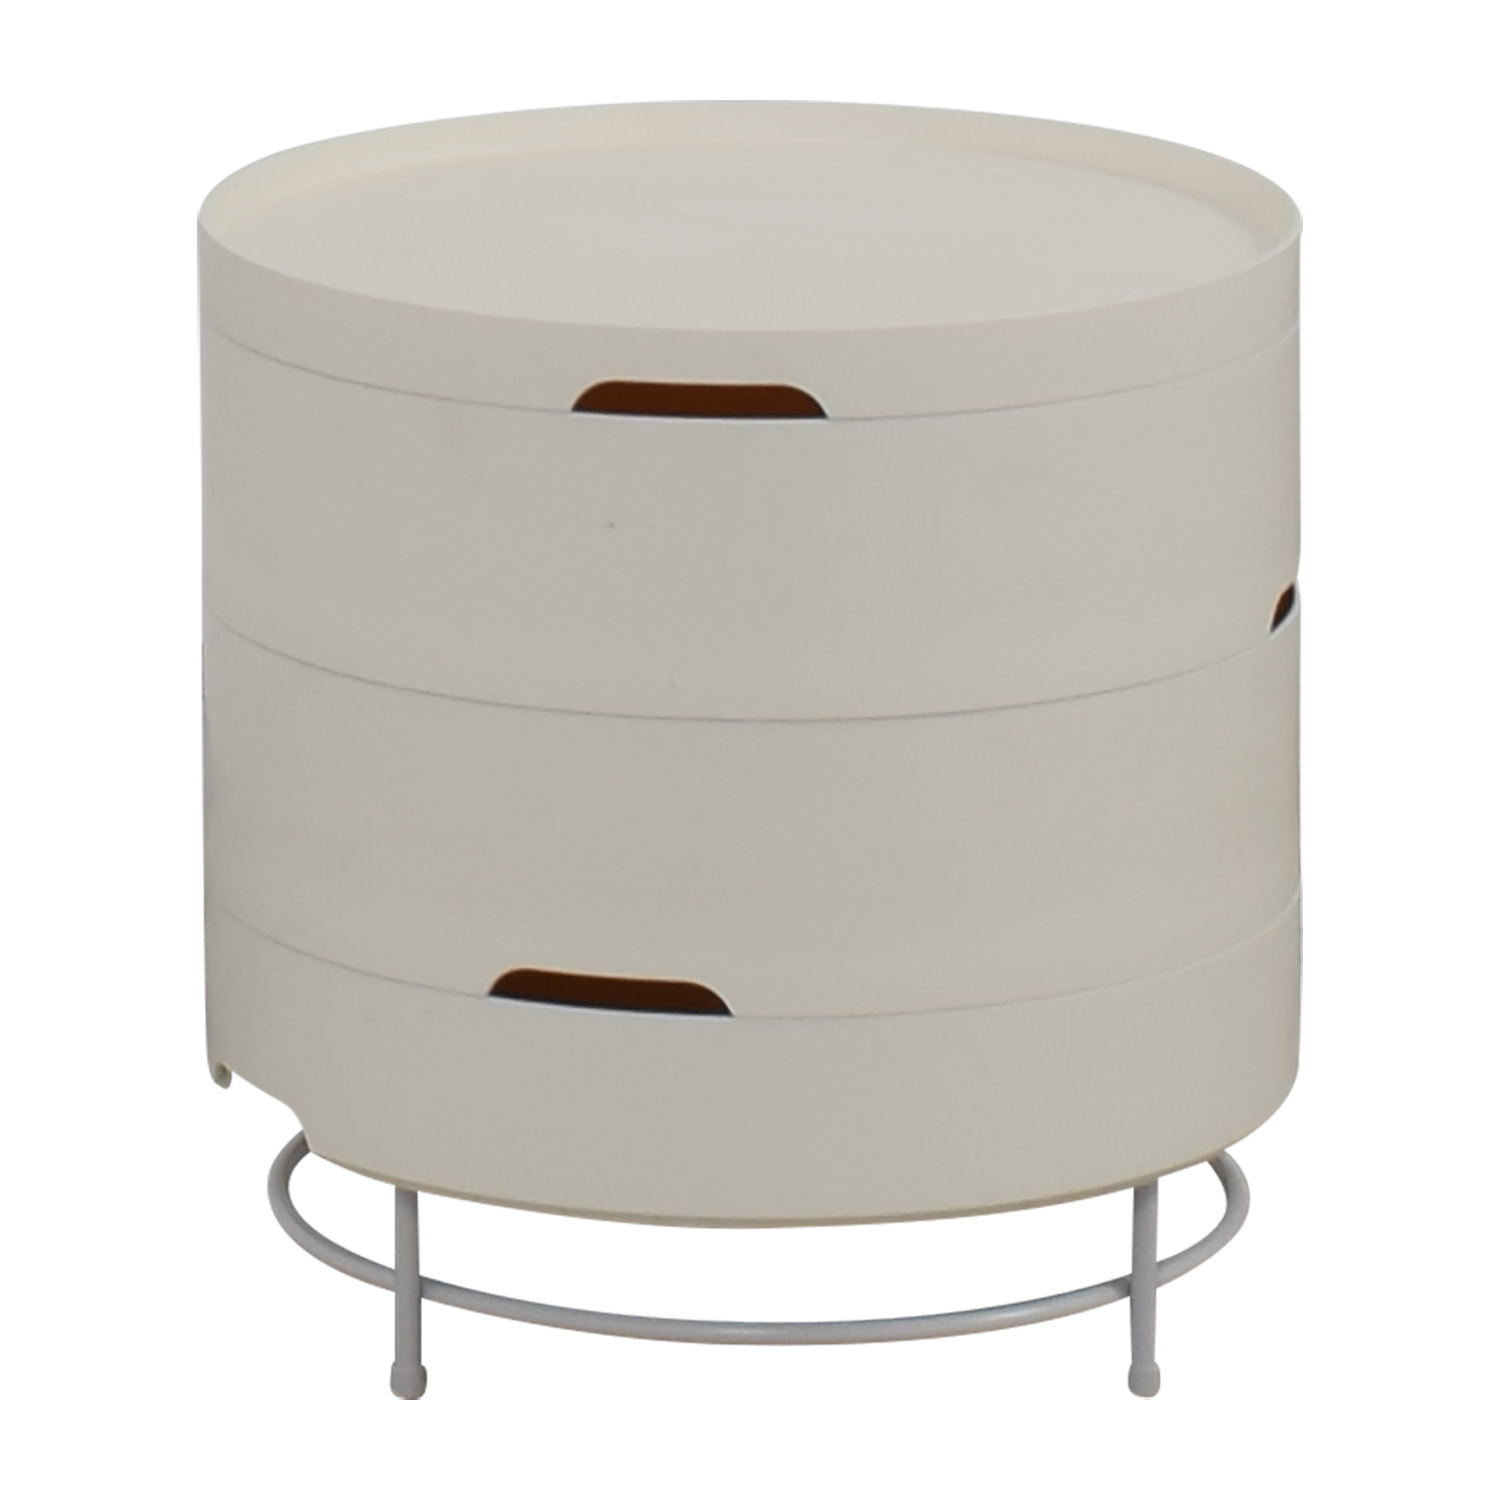 57 off ikea ikea ps 2014 white round storage table tables for Off white round table